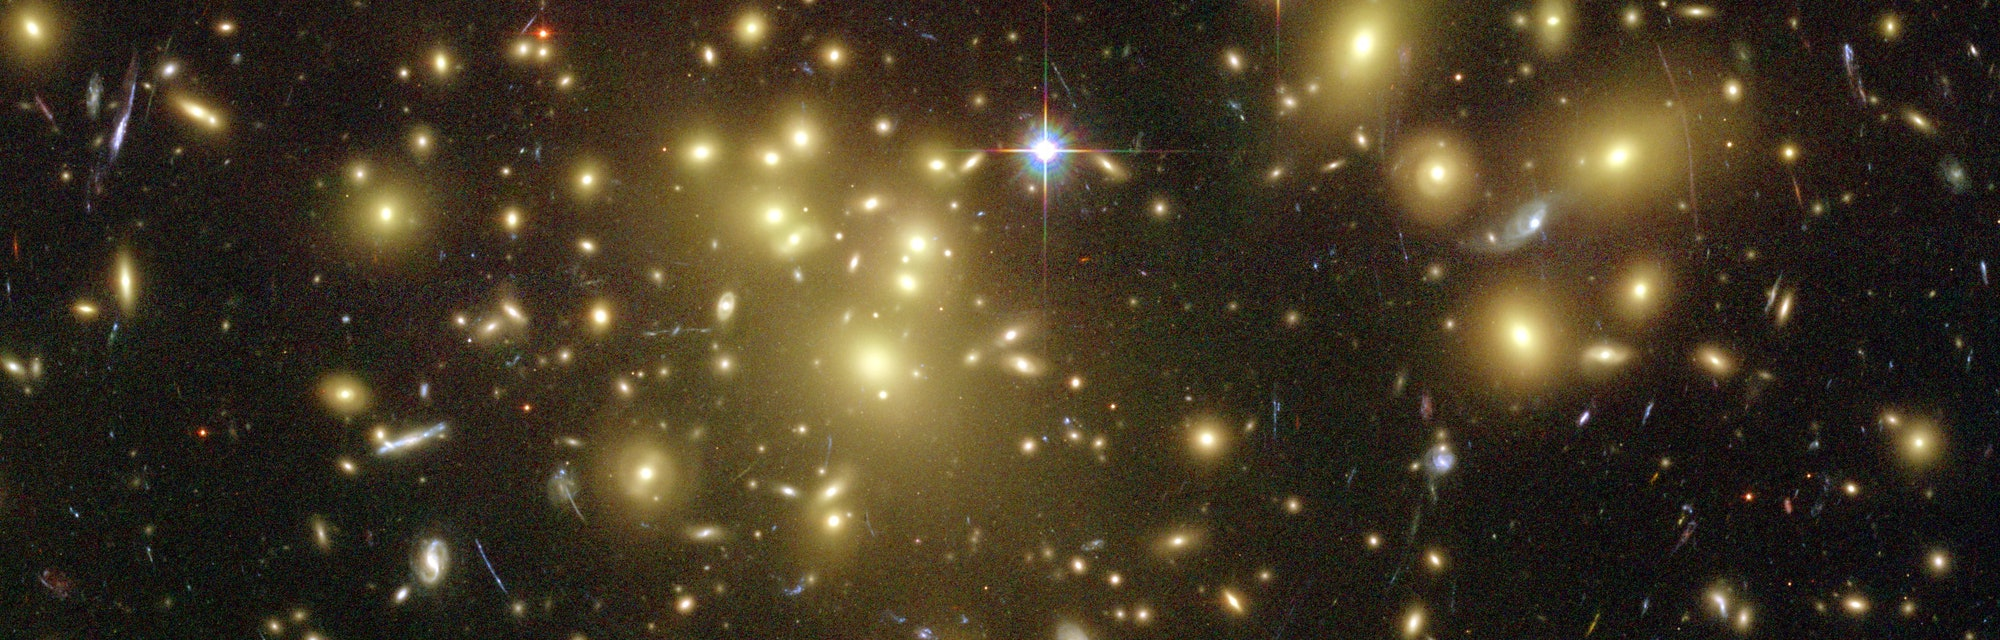 Dark matter can be inferred from an assortment of physical clues in the universe.